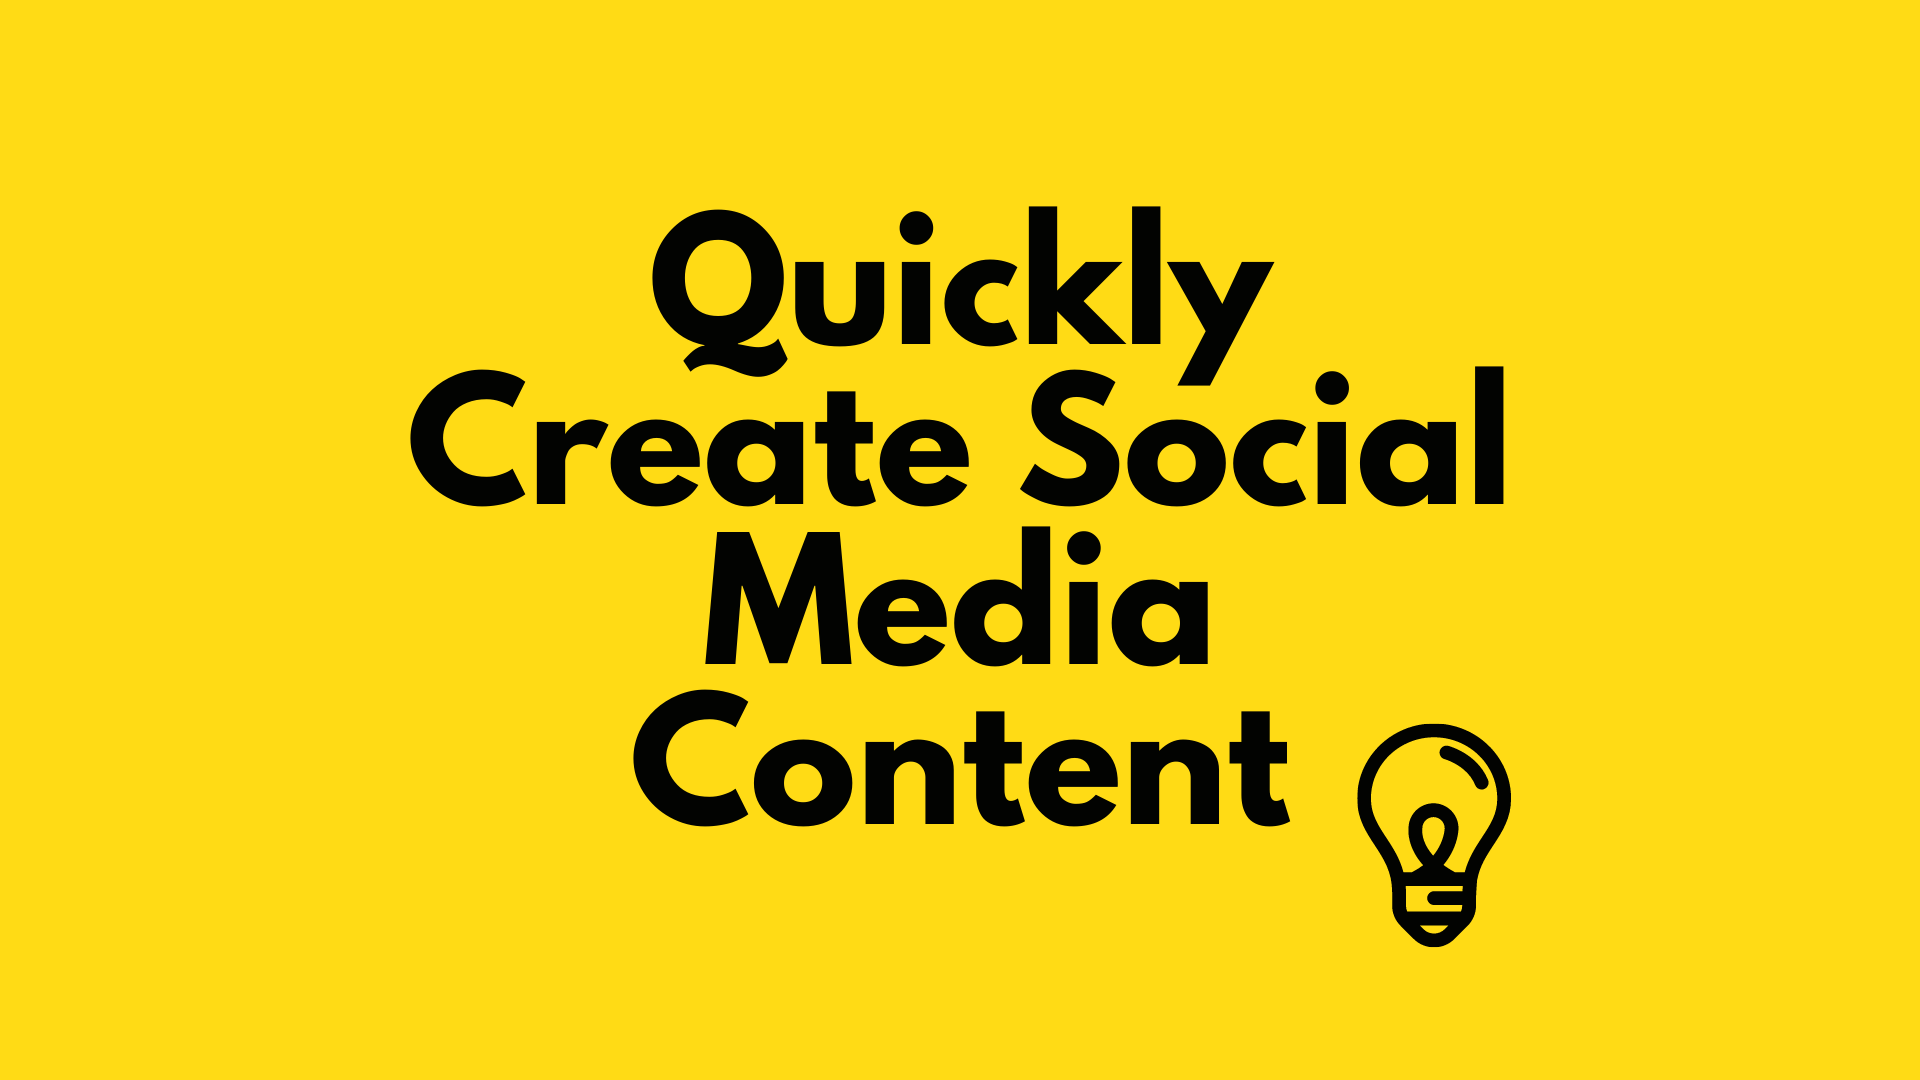 Quickly Create Social Media Content